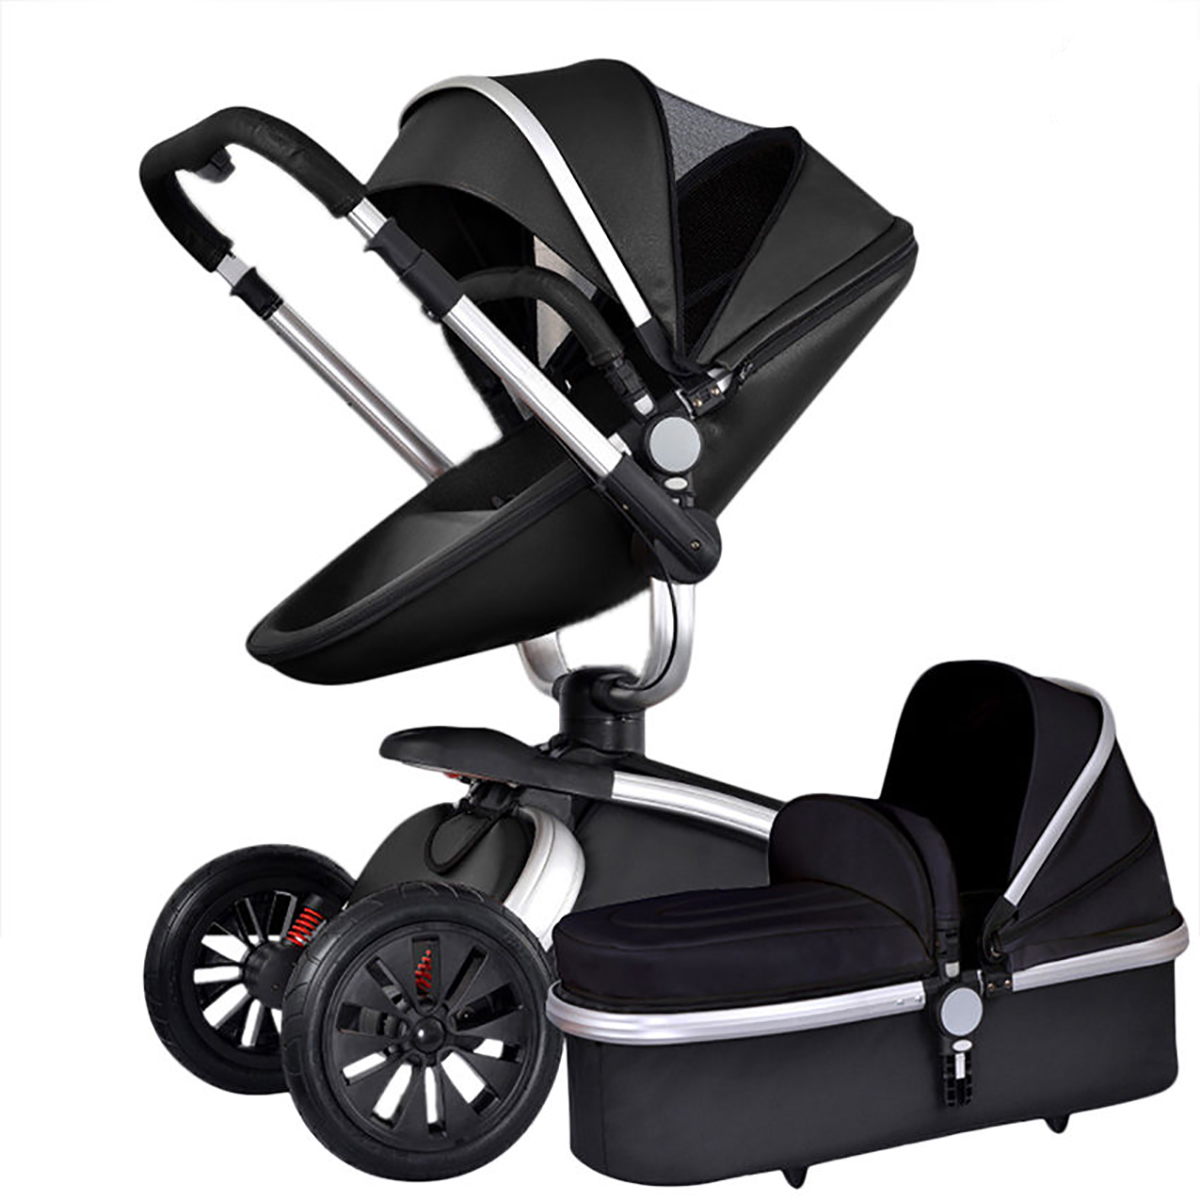 2 in 1/3 in 1 Baby stroller With Car Seat High Landscope Folding Baby Carriage For Child From 0-3 Years Prams For Newborns 3